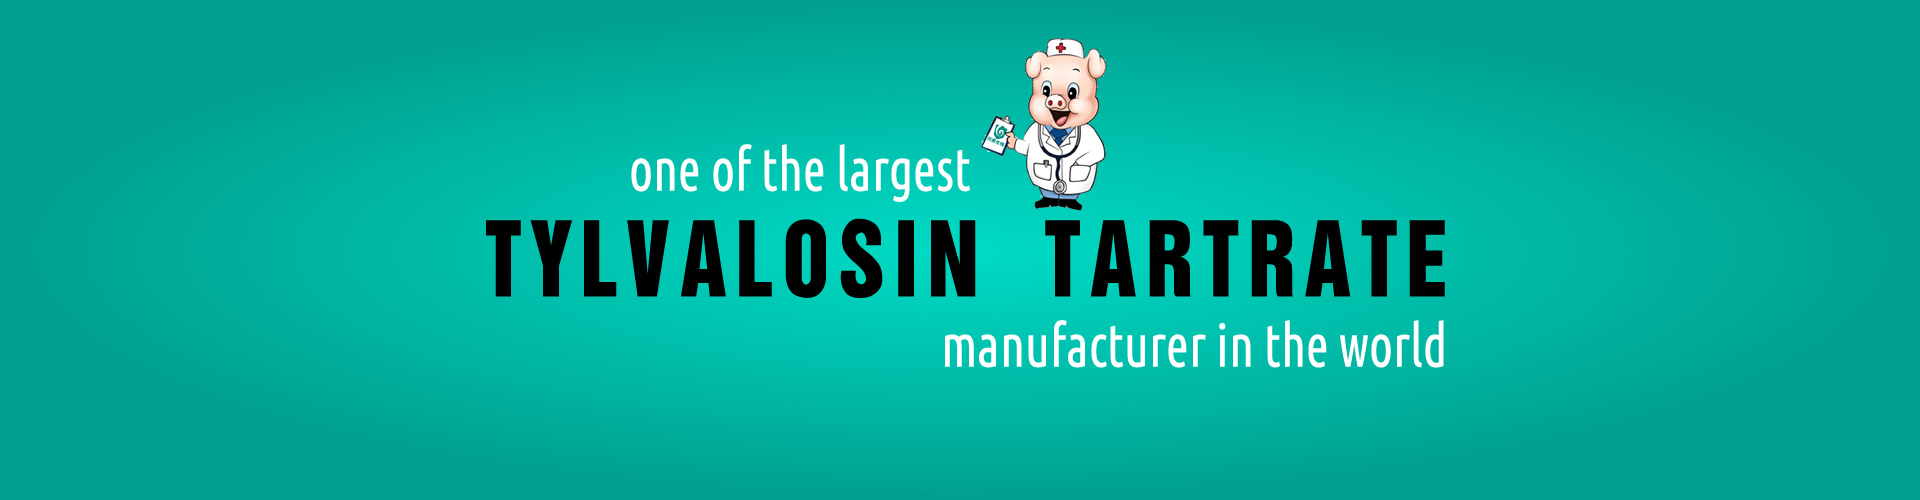 One of the largest tylvalosin tartrate manufacturer in the world